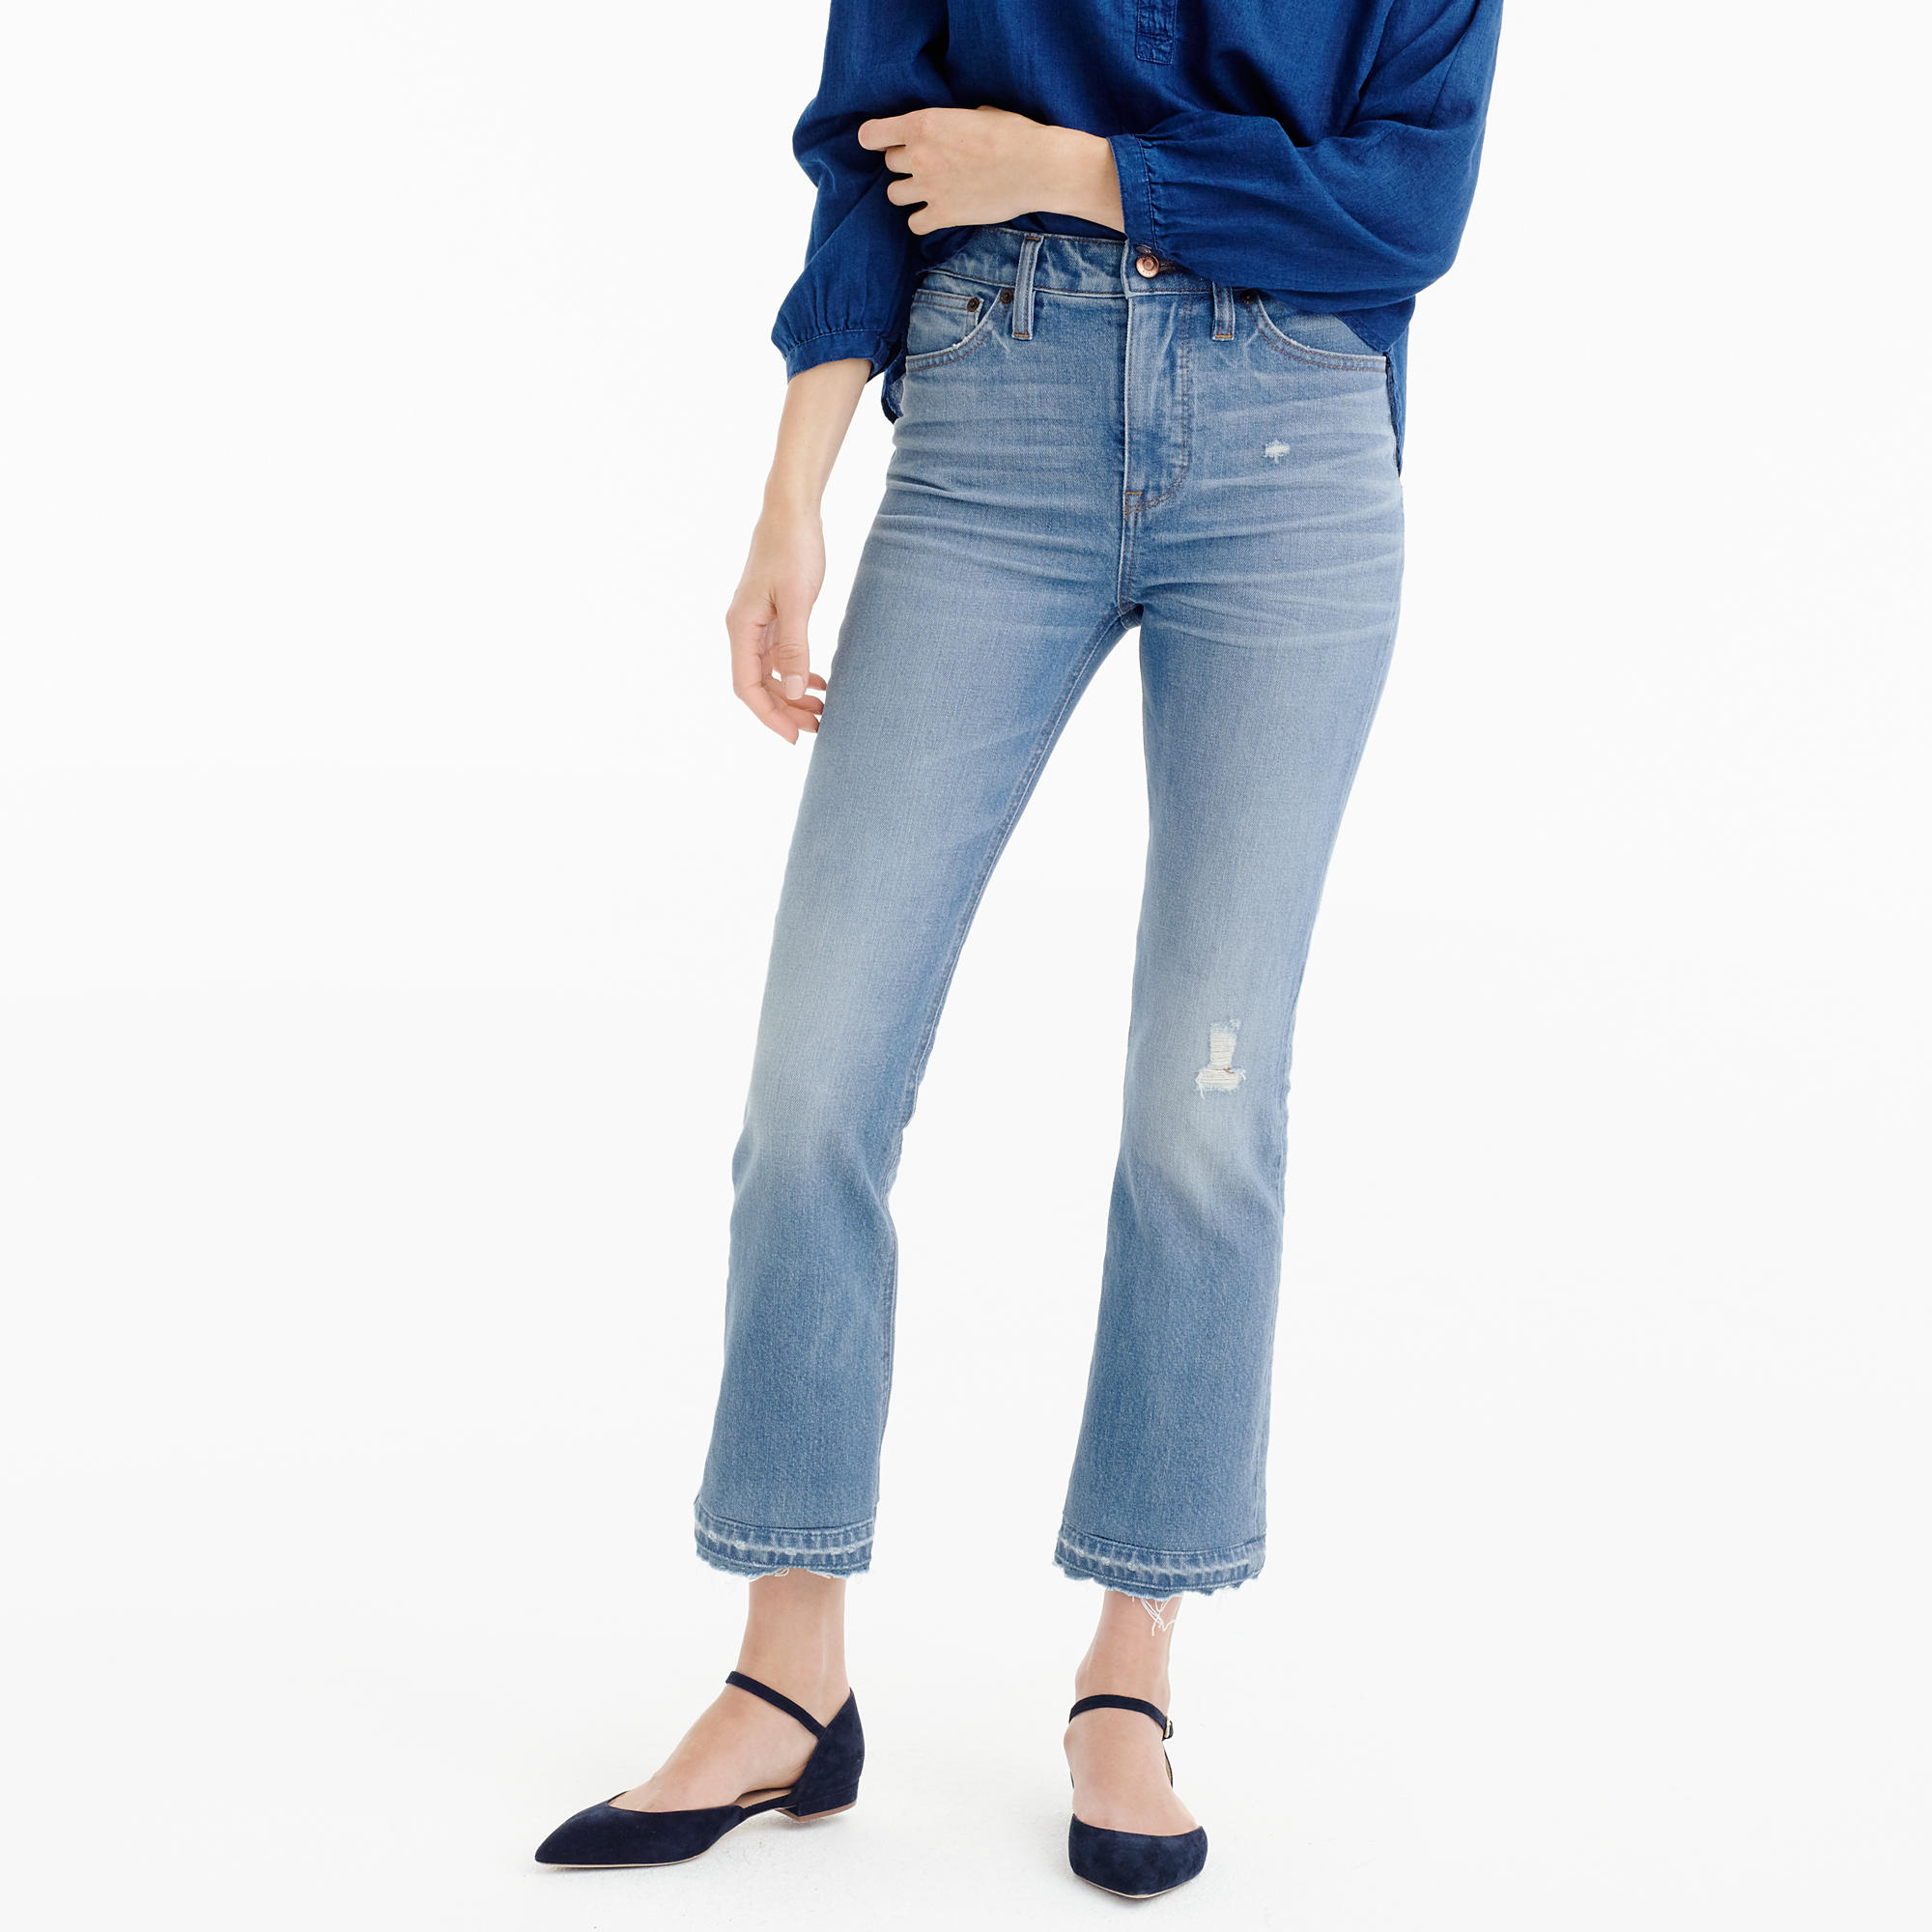 Women's Denim : The Denim Collection | J.Crew